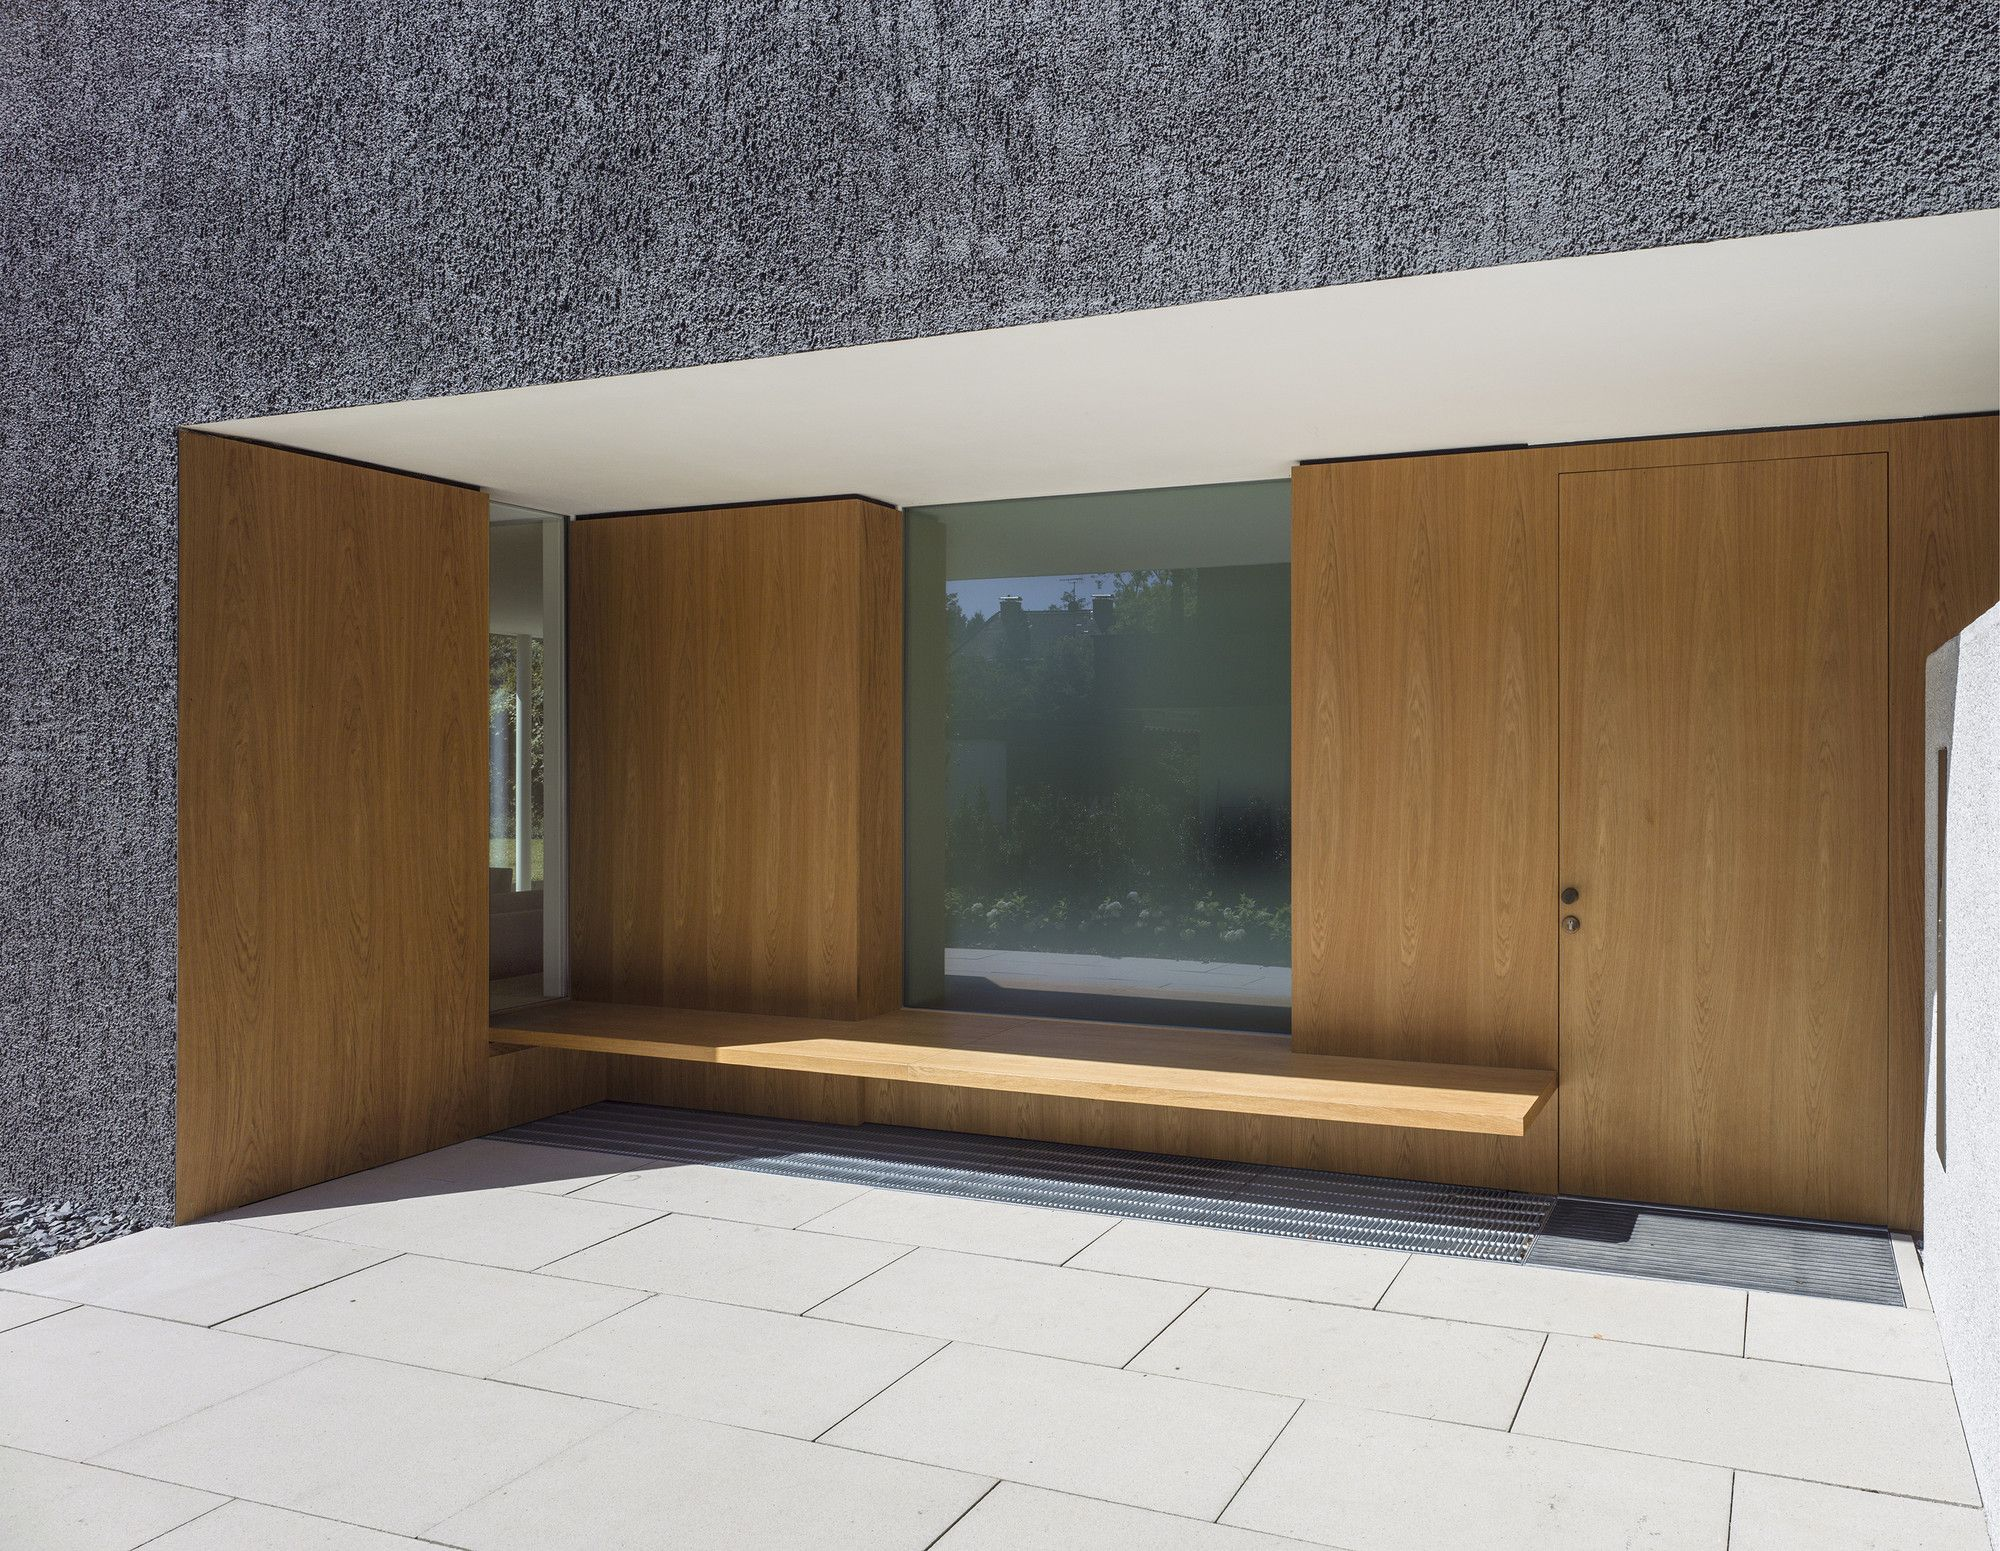 German Minimalistic House Brief Overview. Main entrance is decorated with light wooden panels